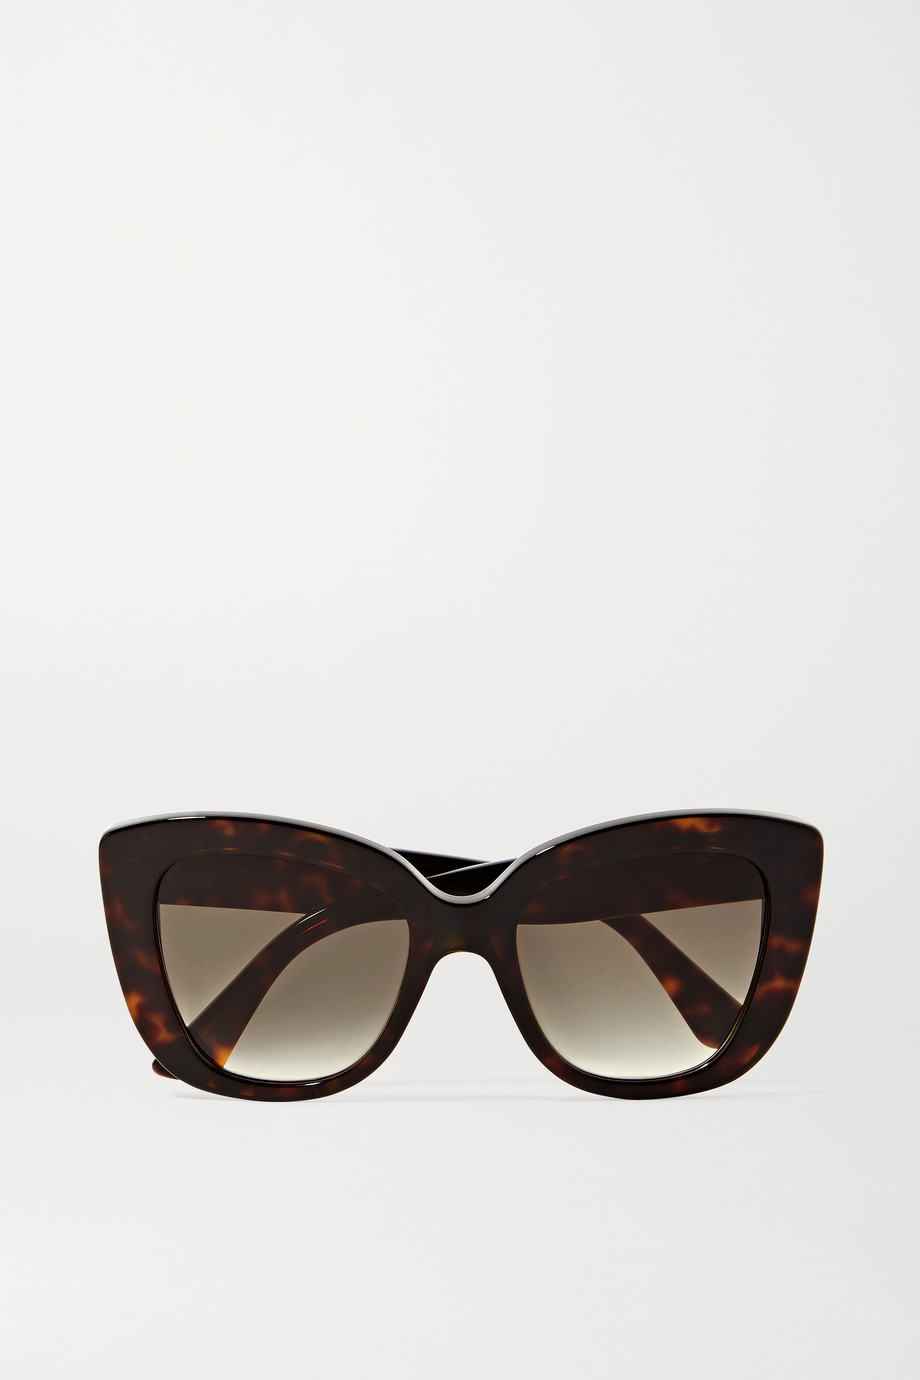 GUCCI Havana cat-eye tortoiseshell acetate sunglasses